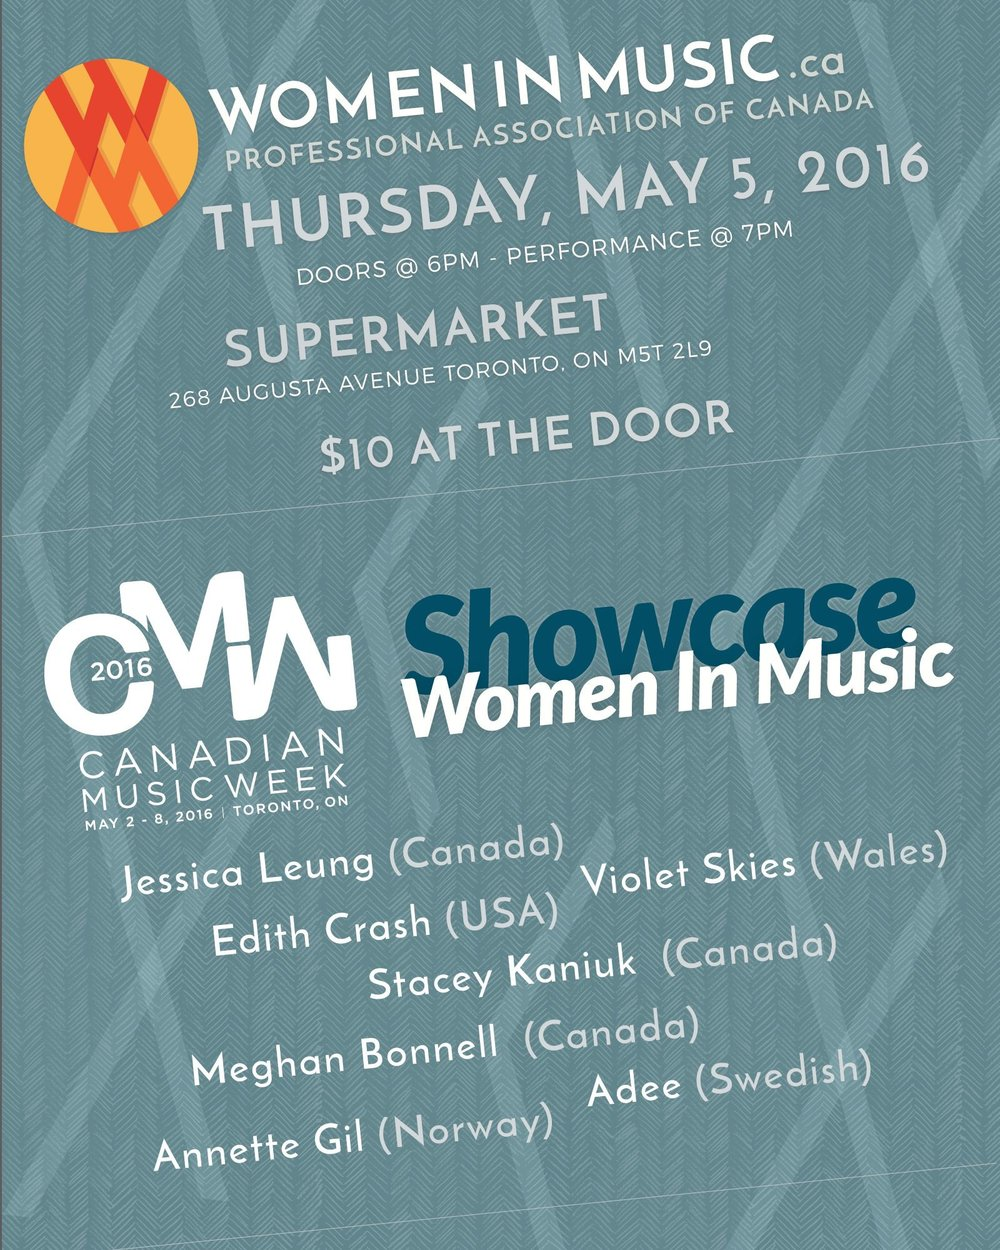 Canadian Music Week Showcase